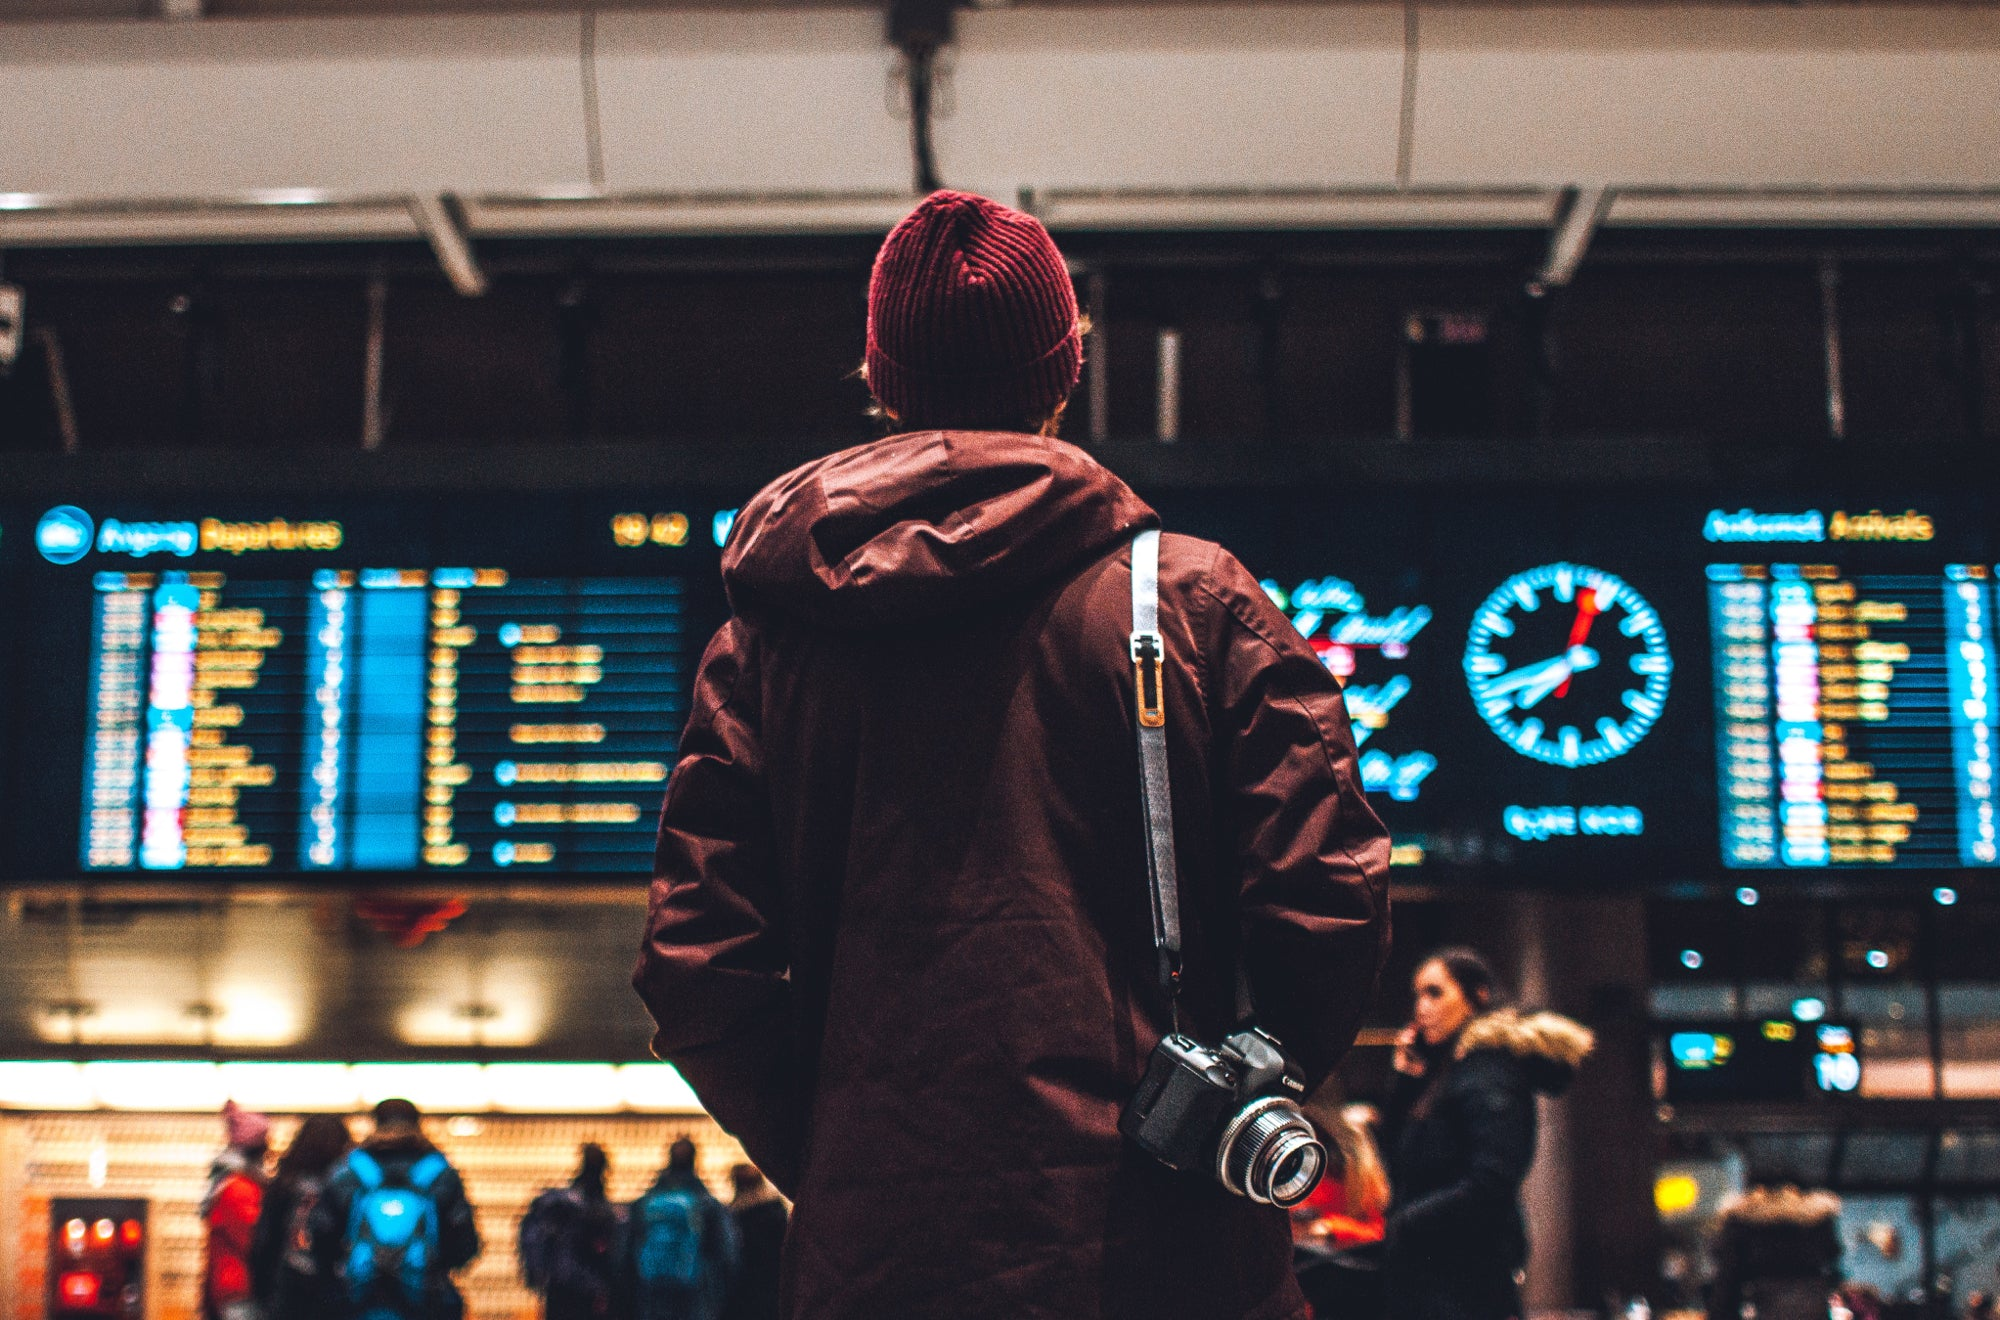 A person dressed in a long coat, a red cap, and a camera slung over the shoulder looks at the airport departures screen | Talsam